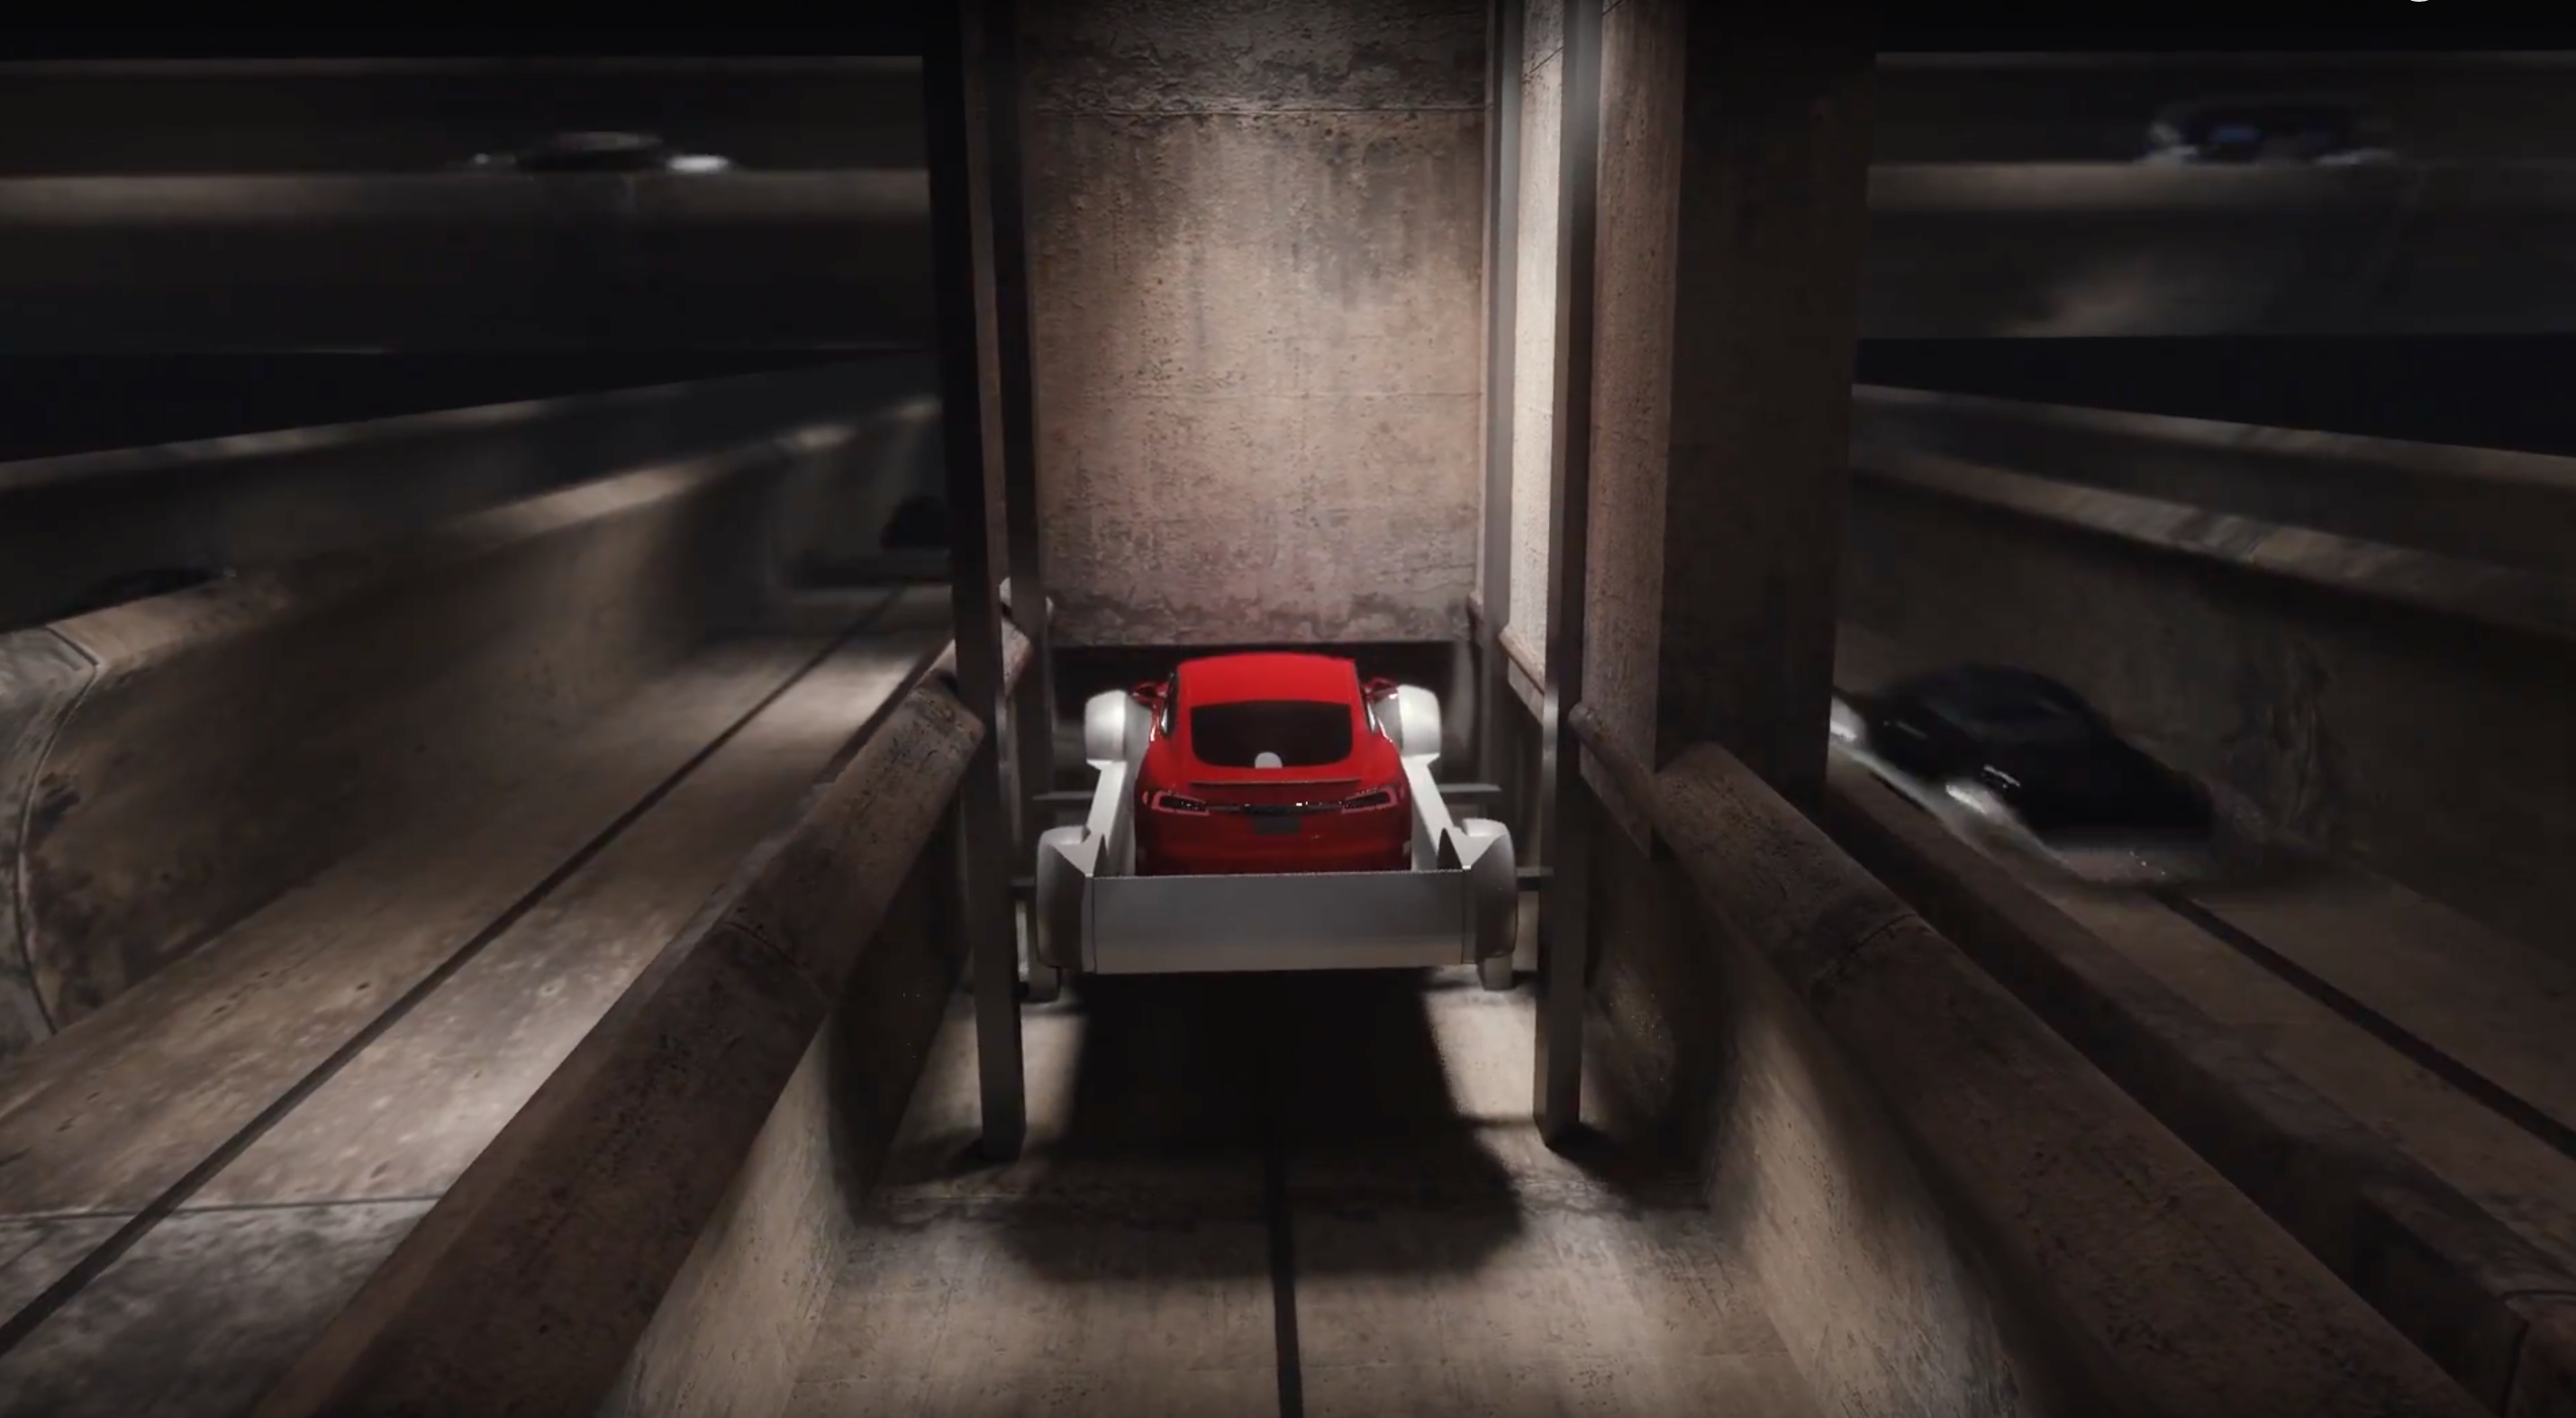 Elon Musk's Boring Company shares vision of futuristic underground travel thumbnail